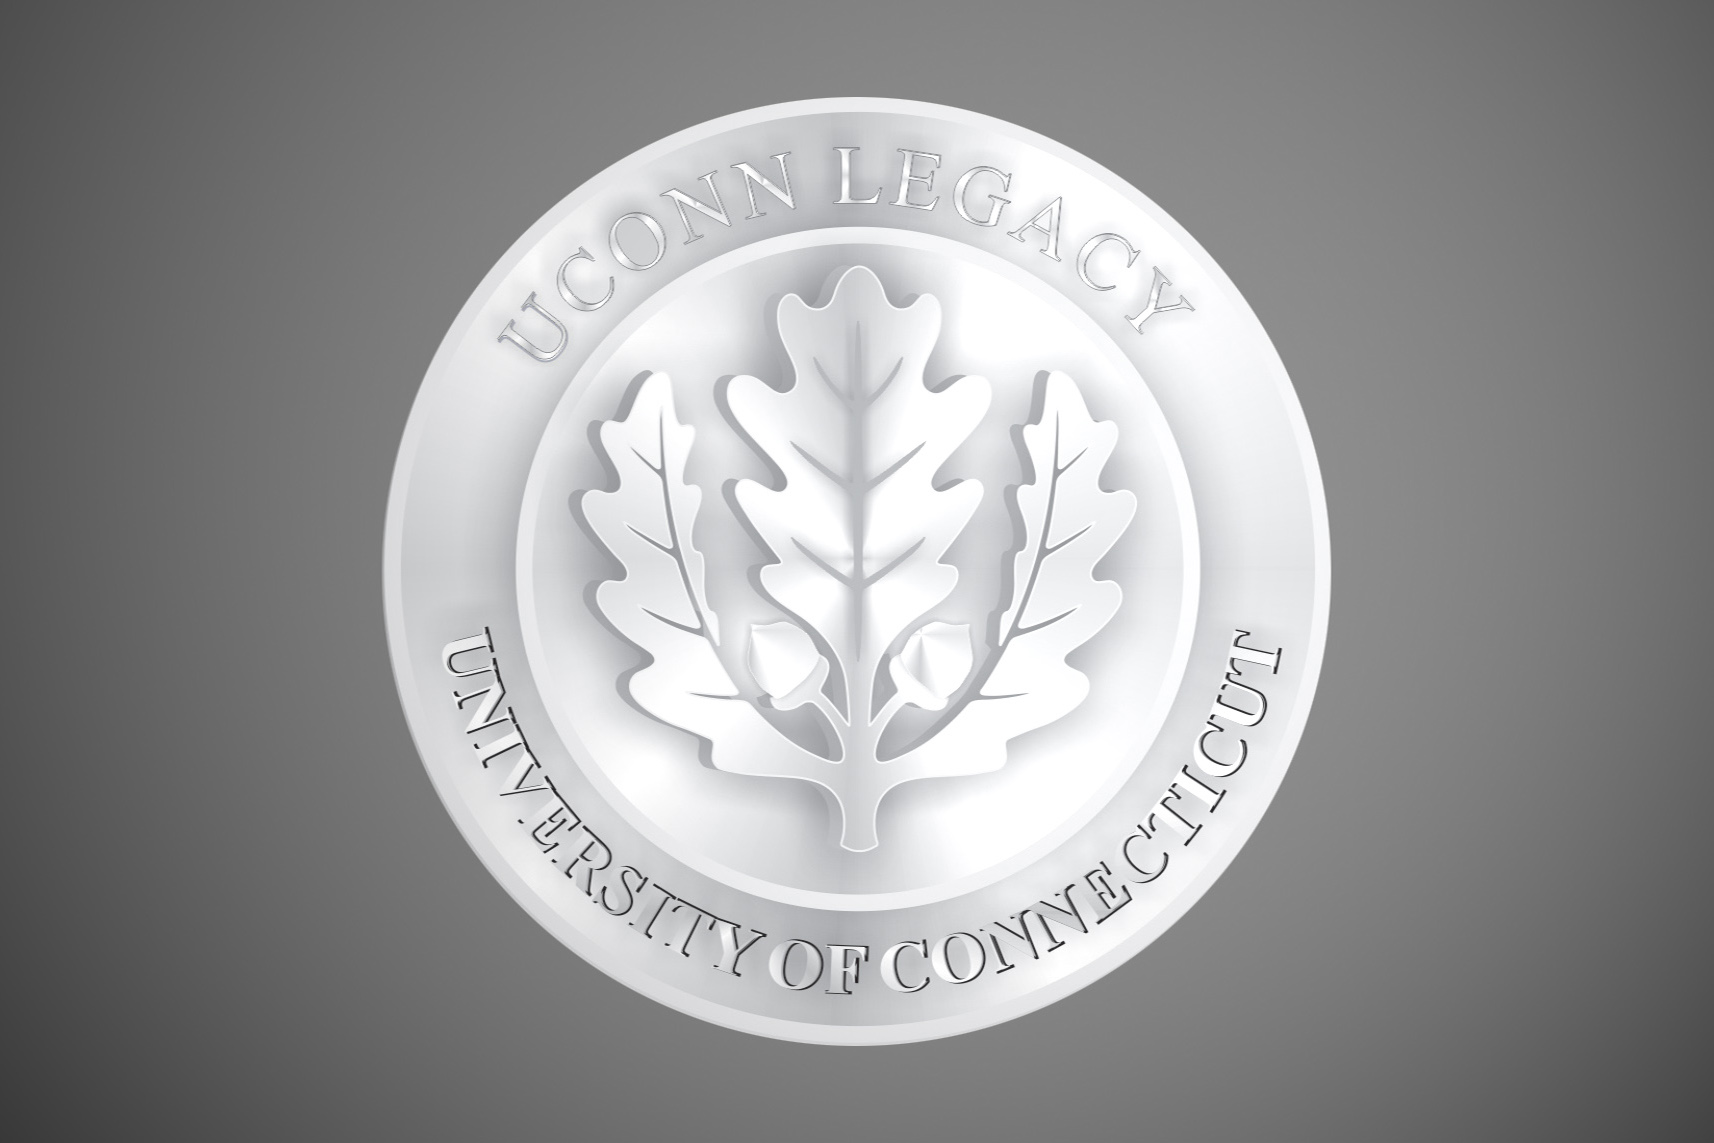 This year, for the first time, the UConn Office of Alumni Relations will distribute legacy medals to graduating seniors who have a parent, grandparent, or sibling who graduated from UConn.